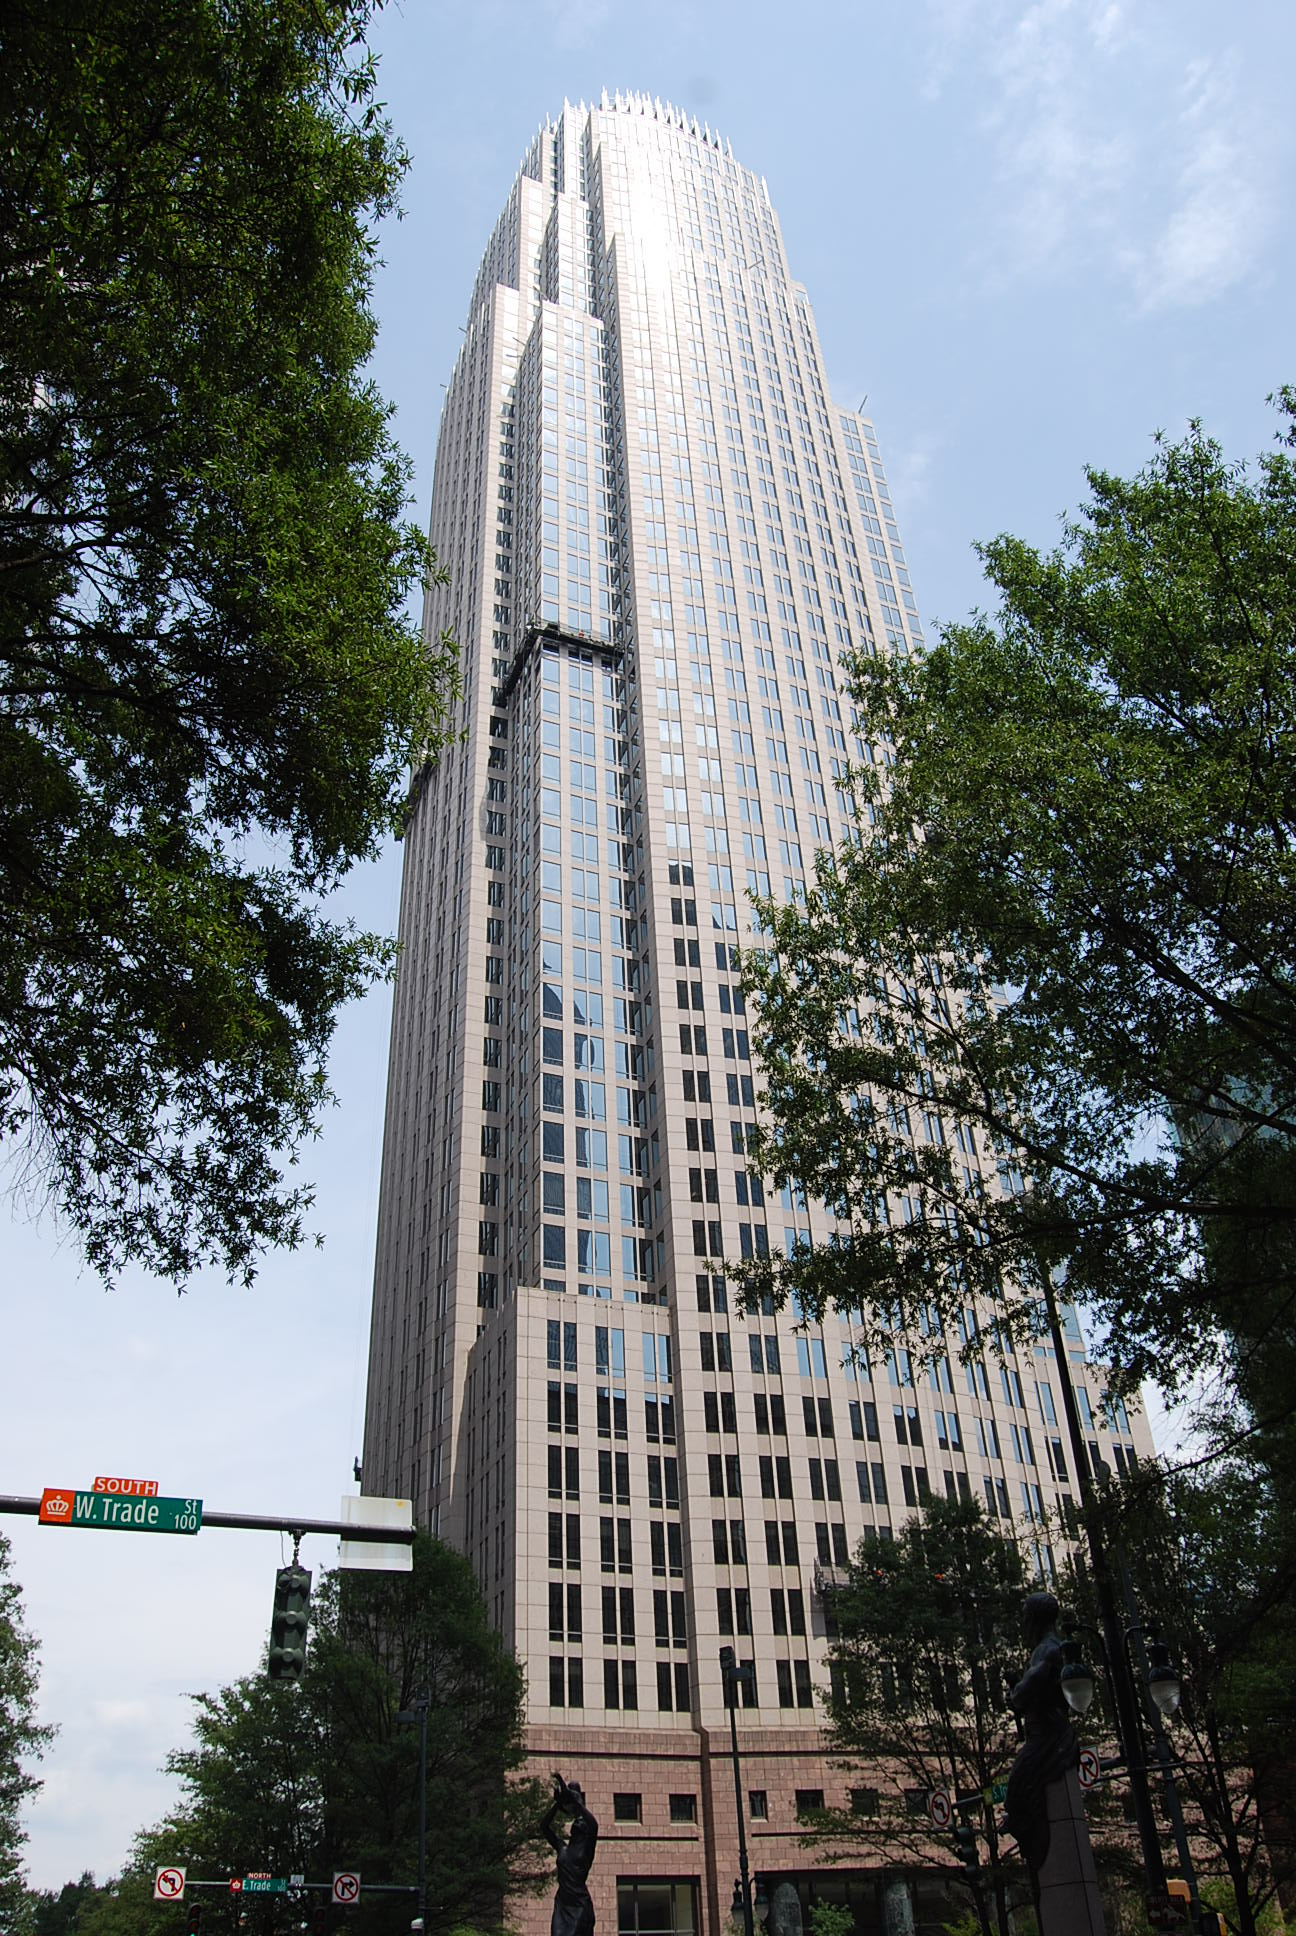 Charlotte Office Bank Of America Corporate Center 100 N Tryon Street  Charlotte, NC 28202